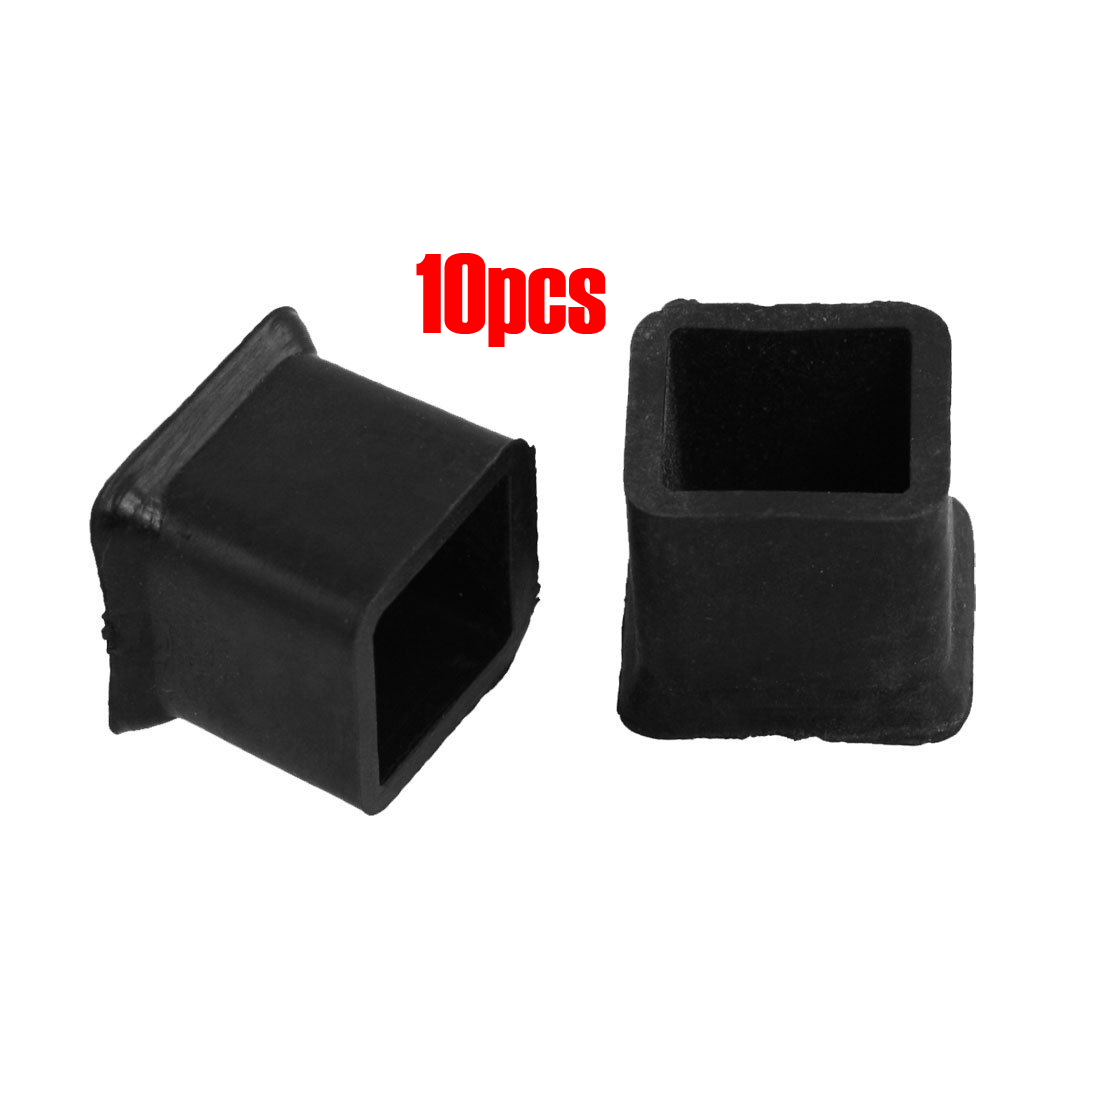 HOT GCZW-10 Pcs Furniture Chair Table Leg Rubber Foot Covers Protectors 20mm x 20mm szs hot new 10pcs furniture chair table leg rubber foot covers protectors 20mm x 20mm free shipping